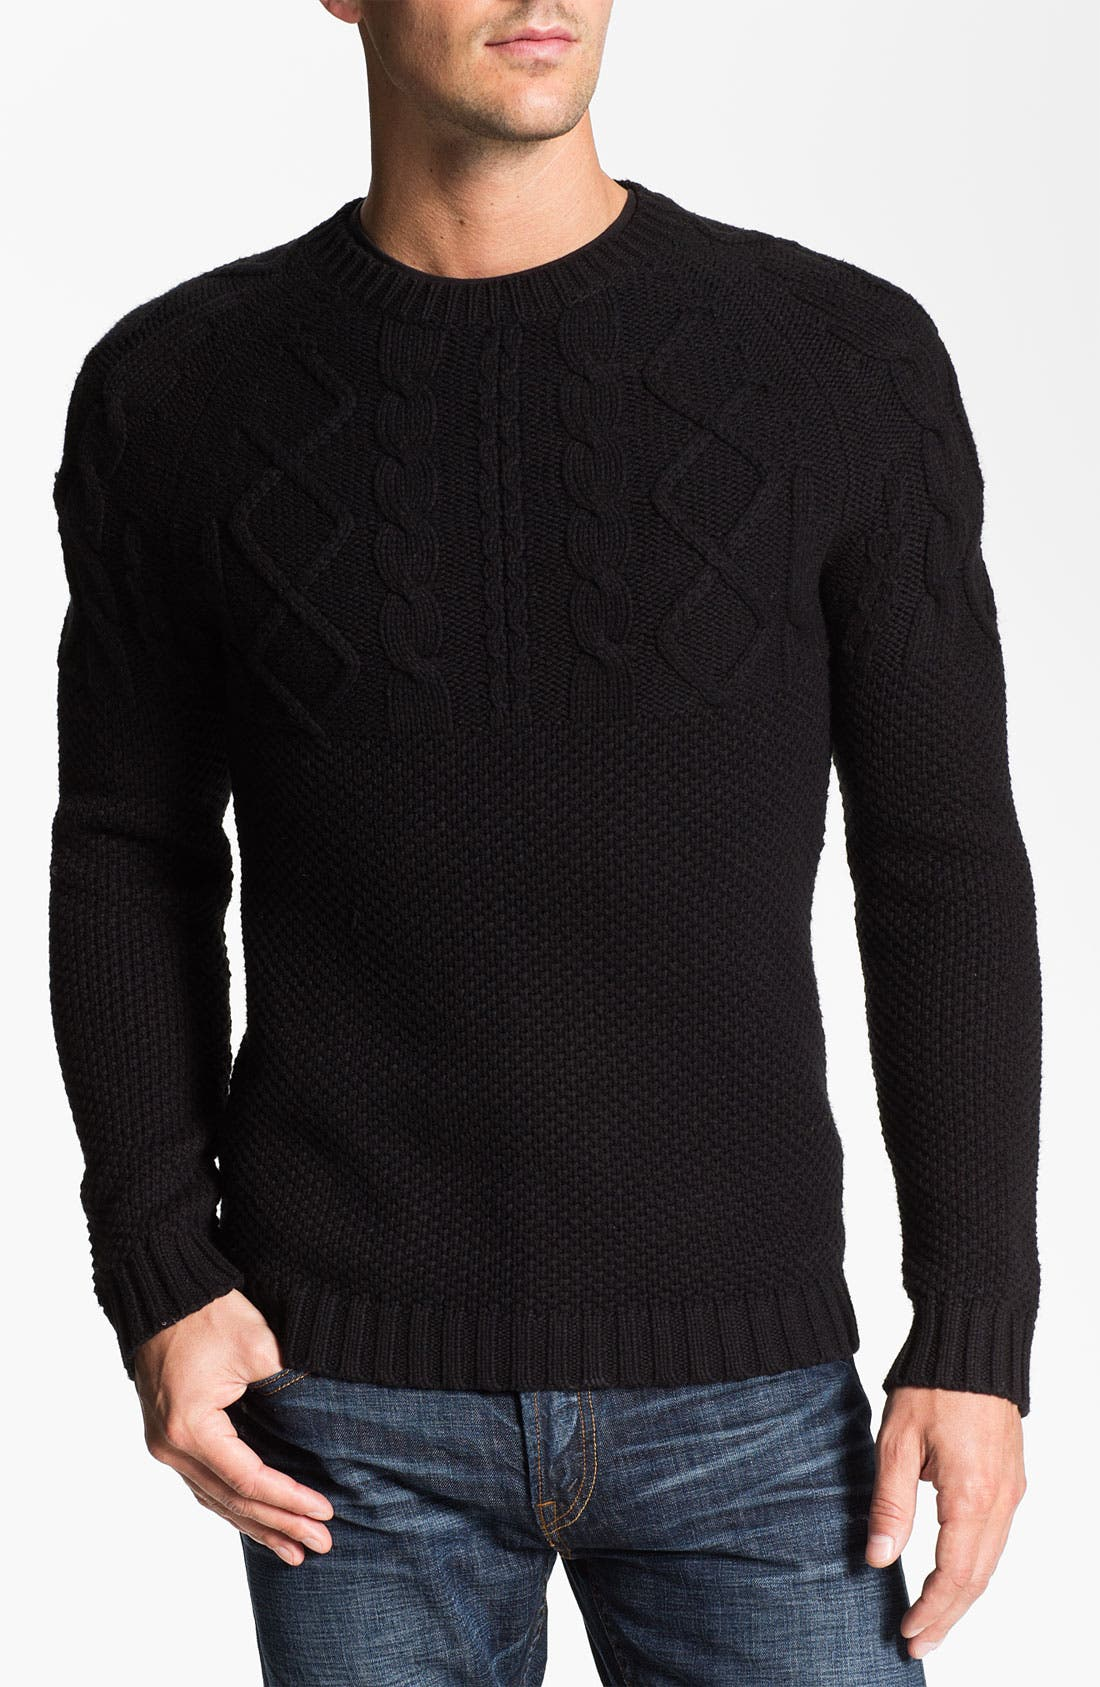 Alternate Image 1 Selected - J.C. Rags Cable Knit Sweater